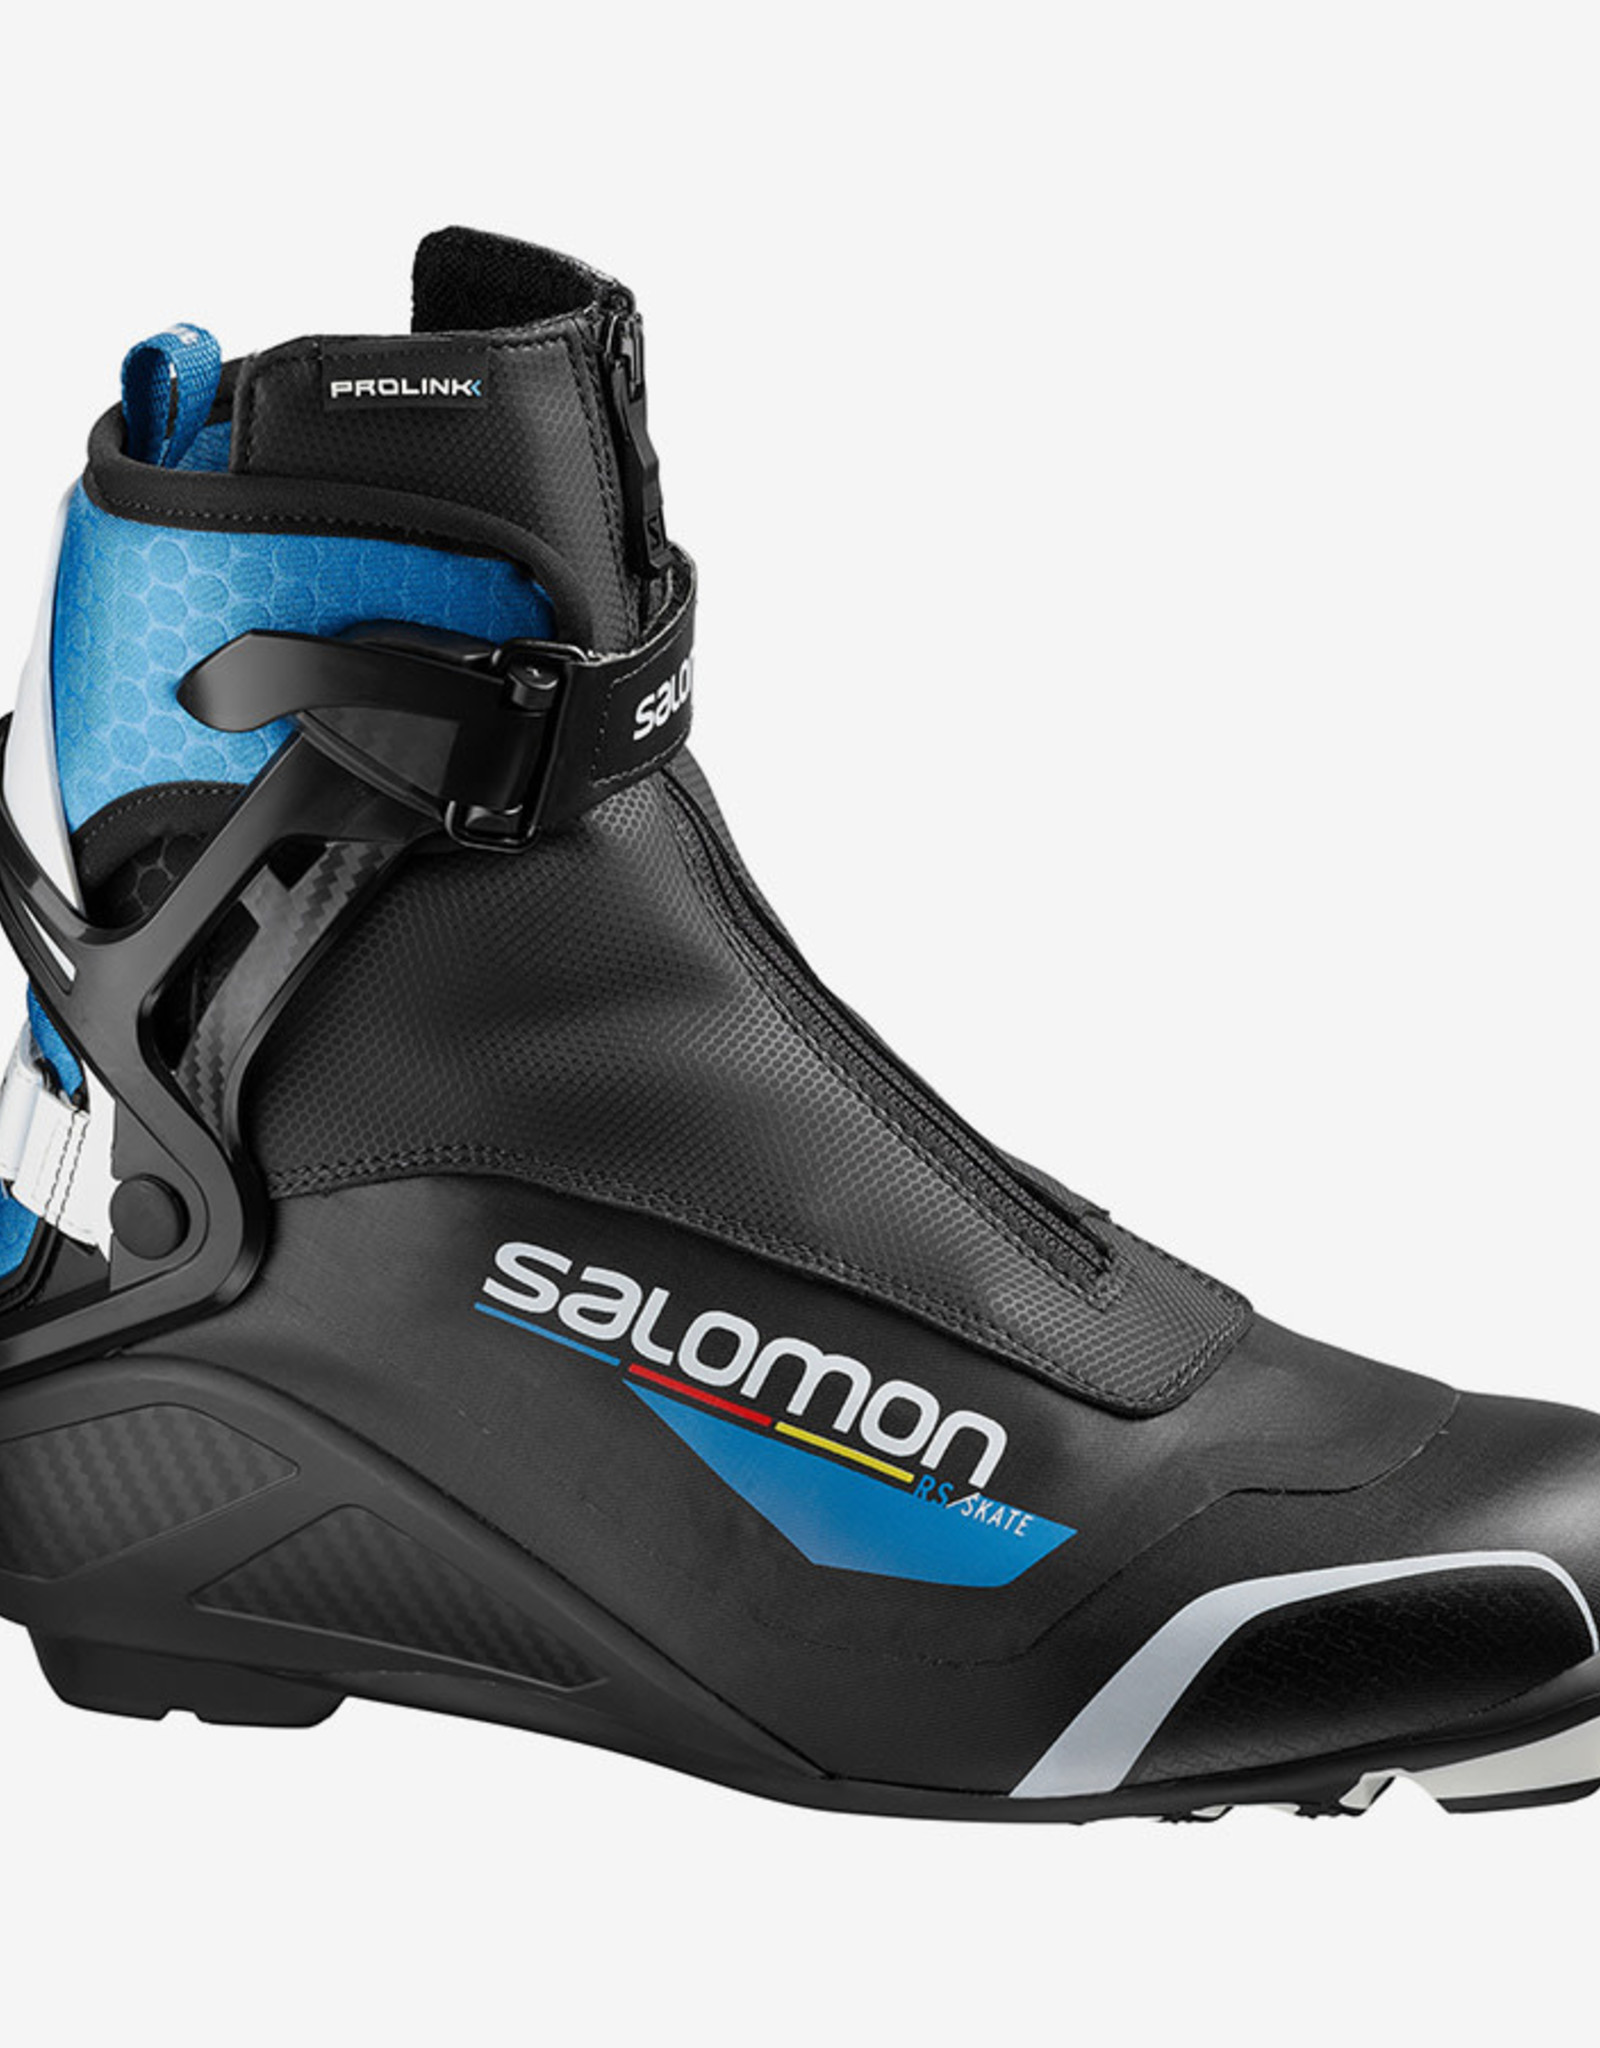 SALOMON Demo RS Prolink SK Boot